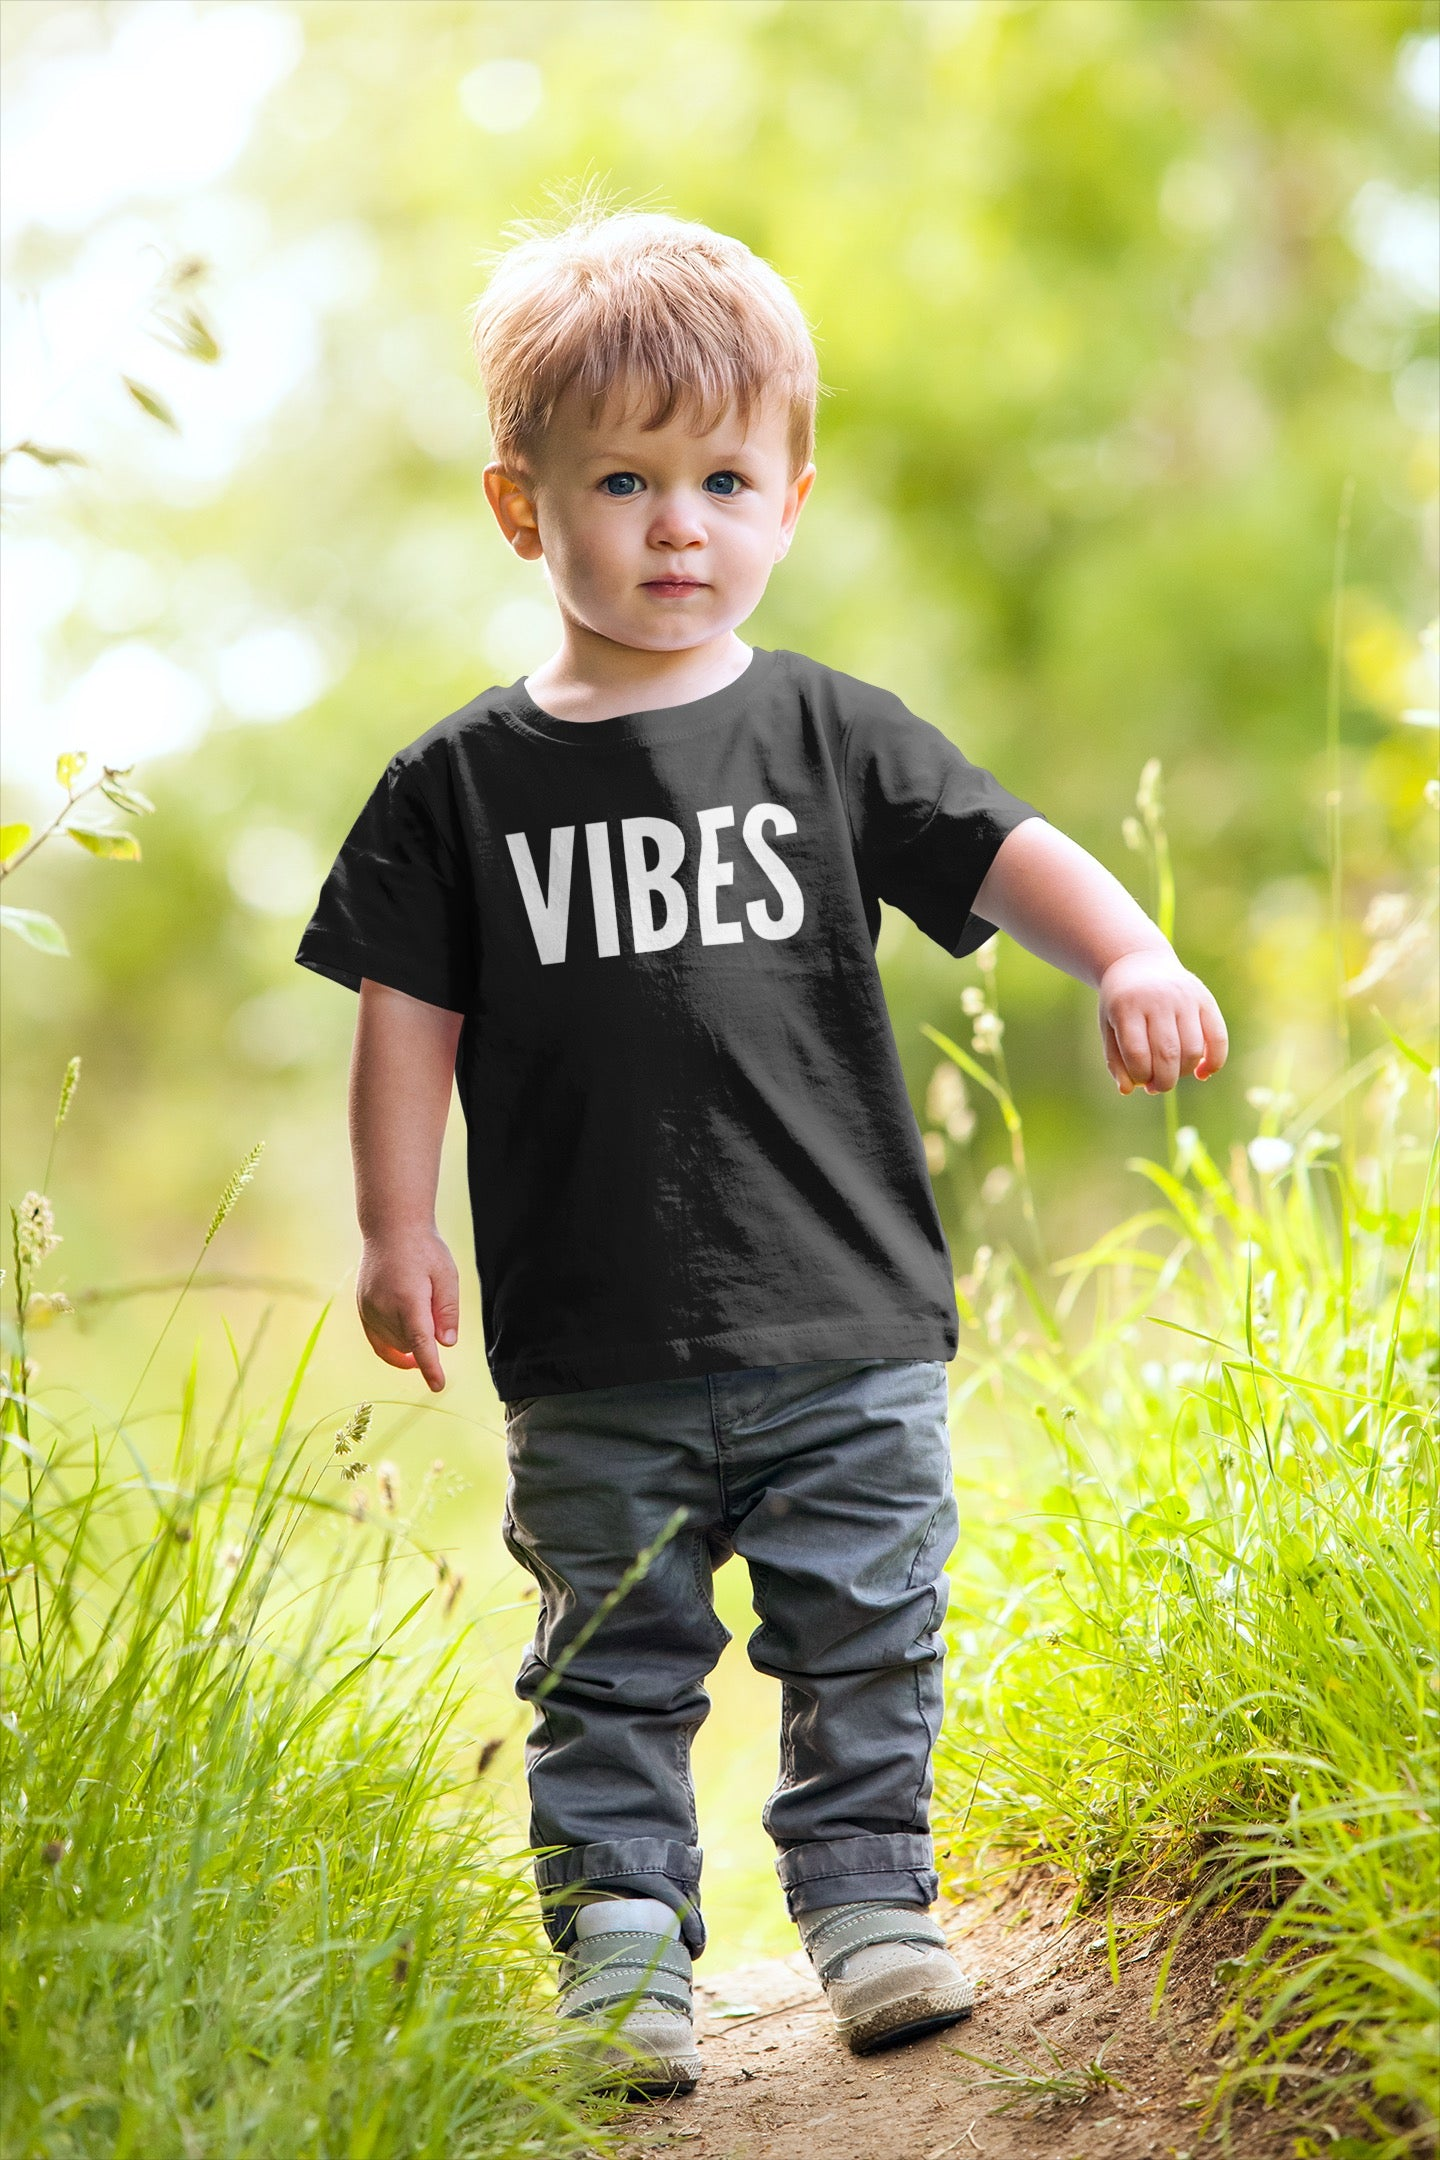 VIBES - Toddler Short Sleeve T-Shirt - Beats 4 Hope